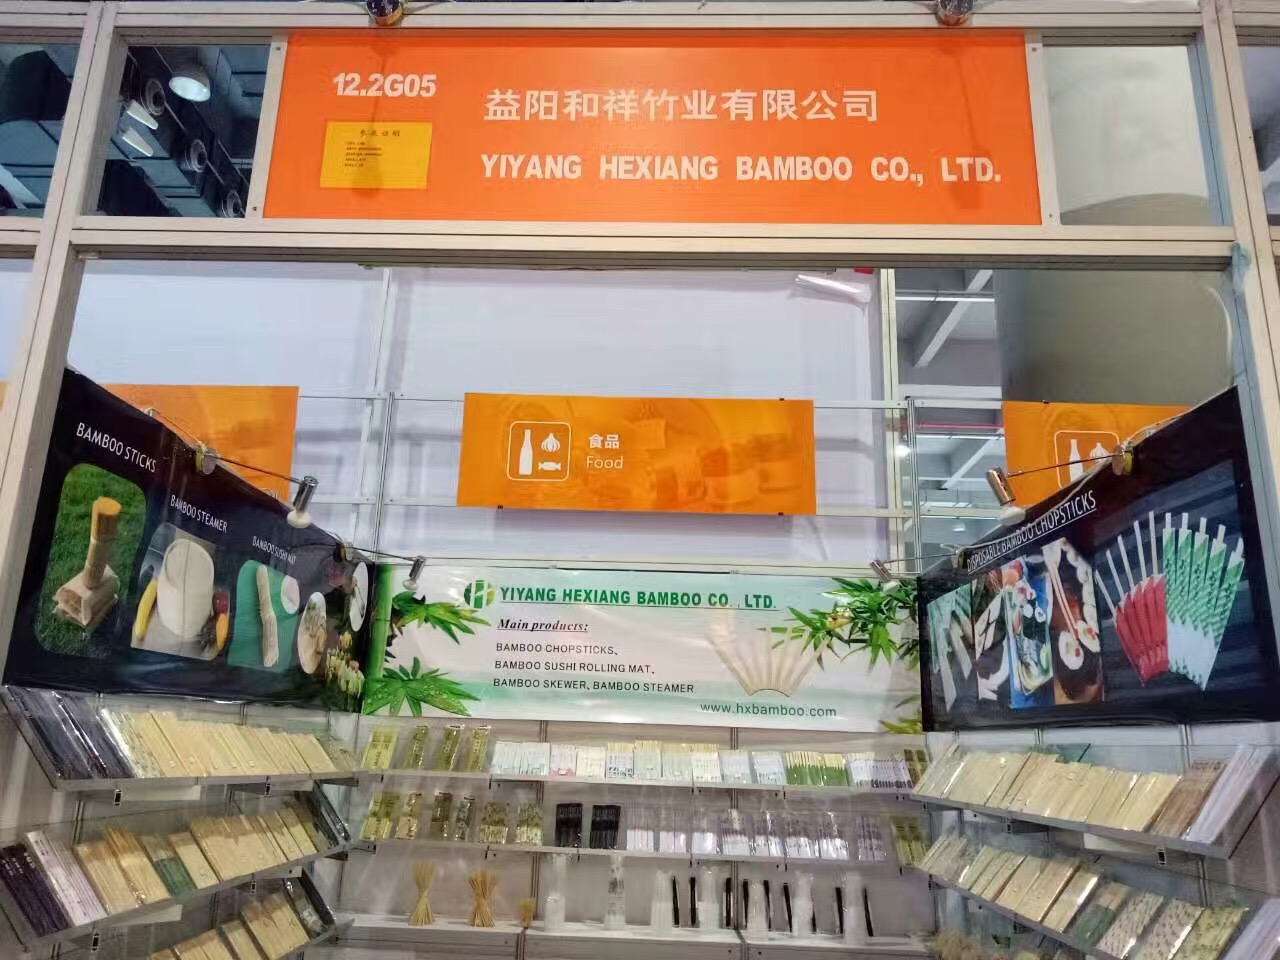 CANTON FAIR IN GUANGZHOU,CHINA